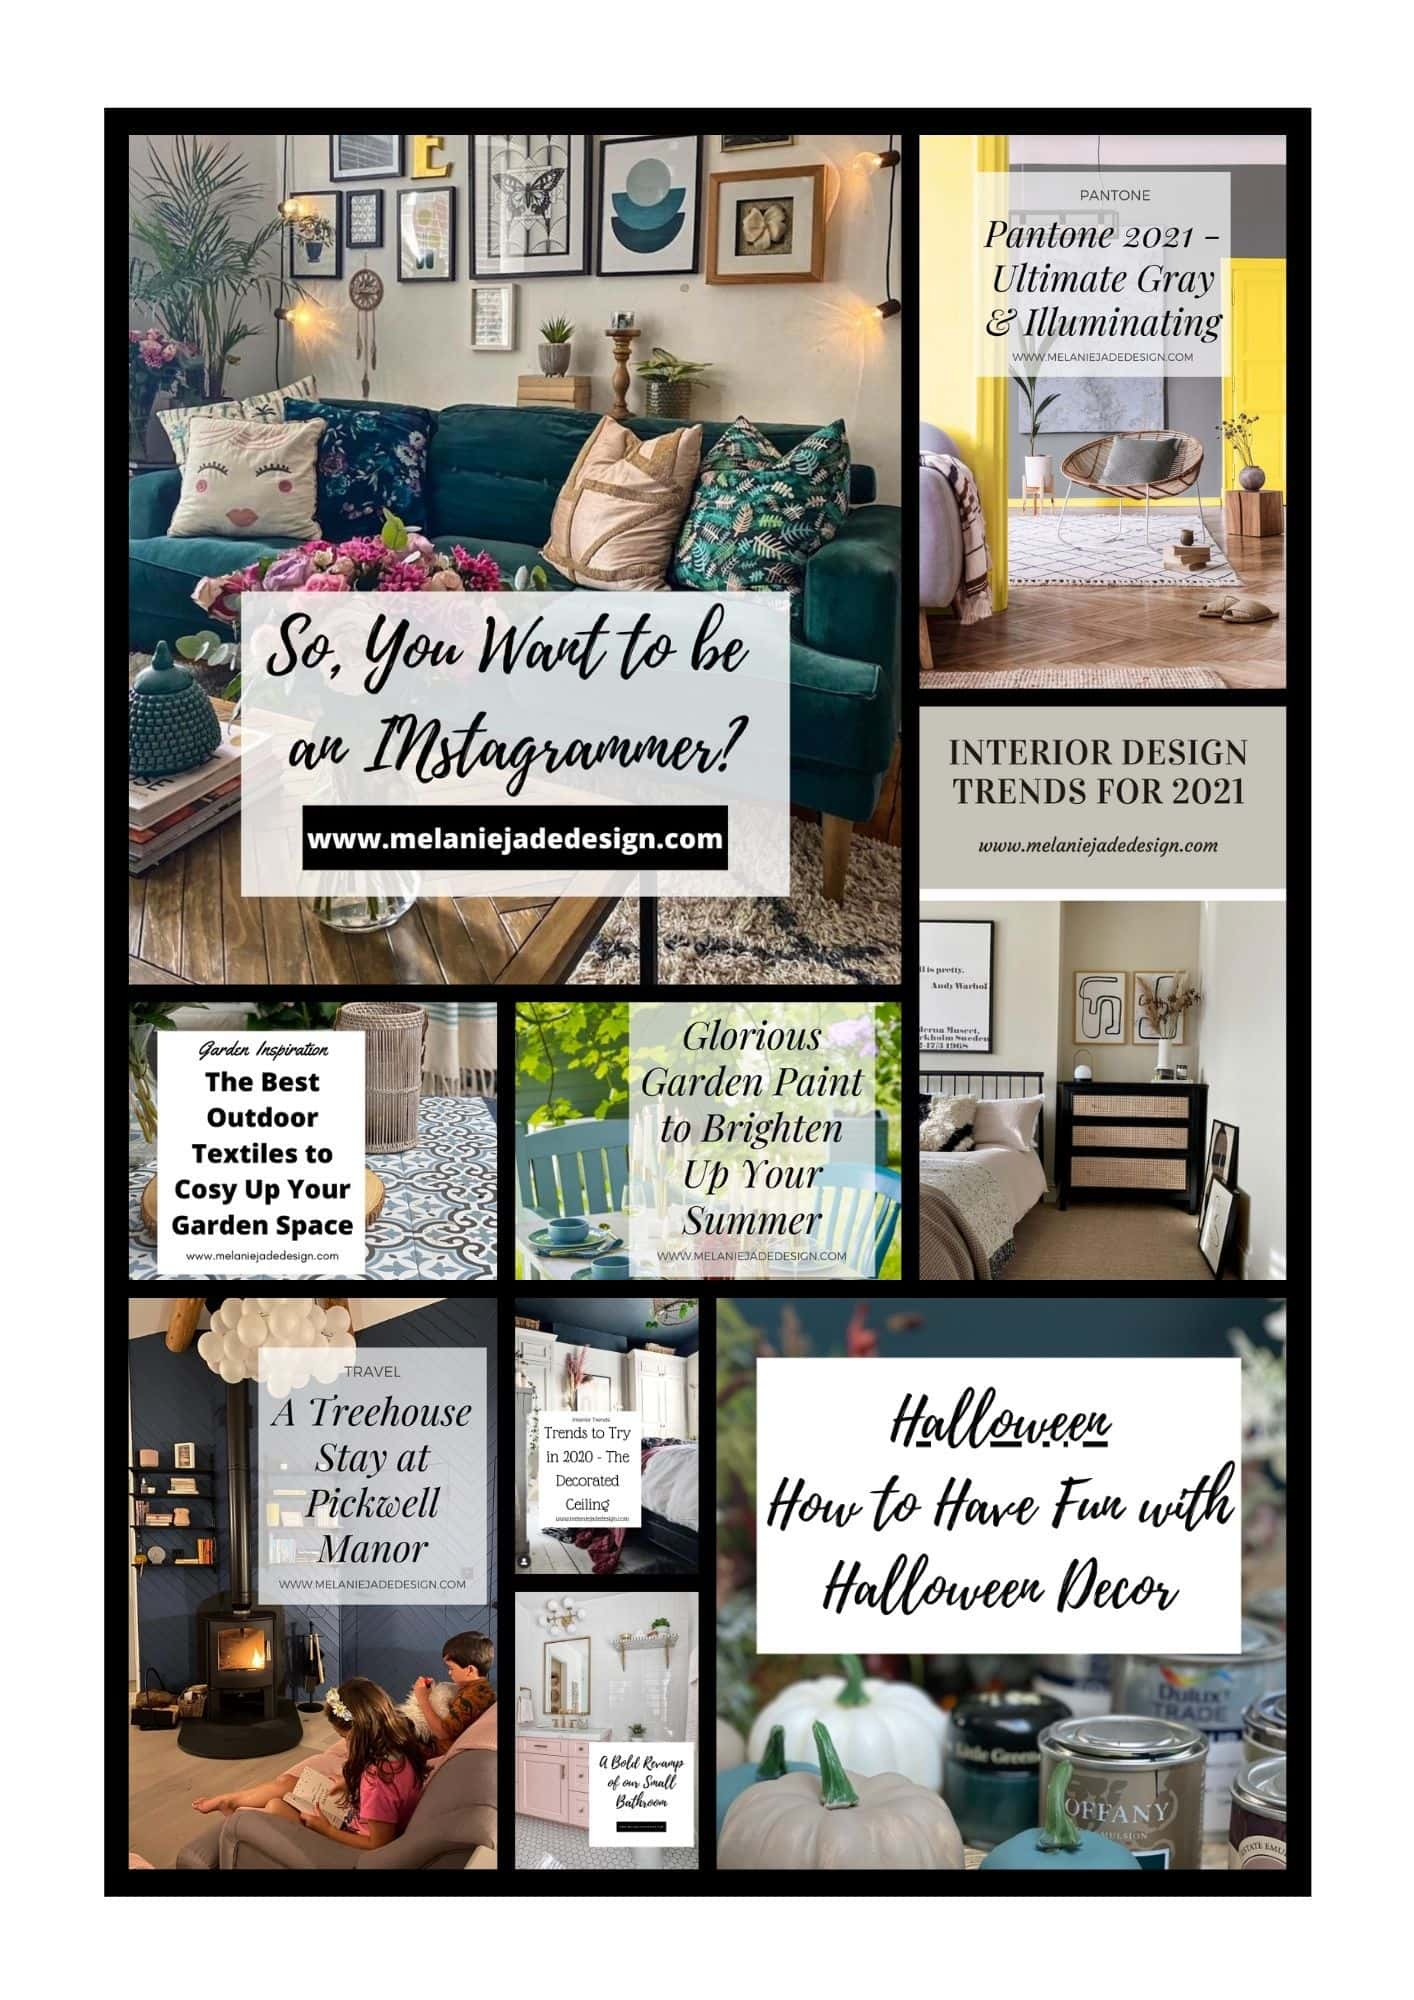 Lots of blog posts from melanie jade design